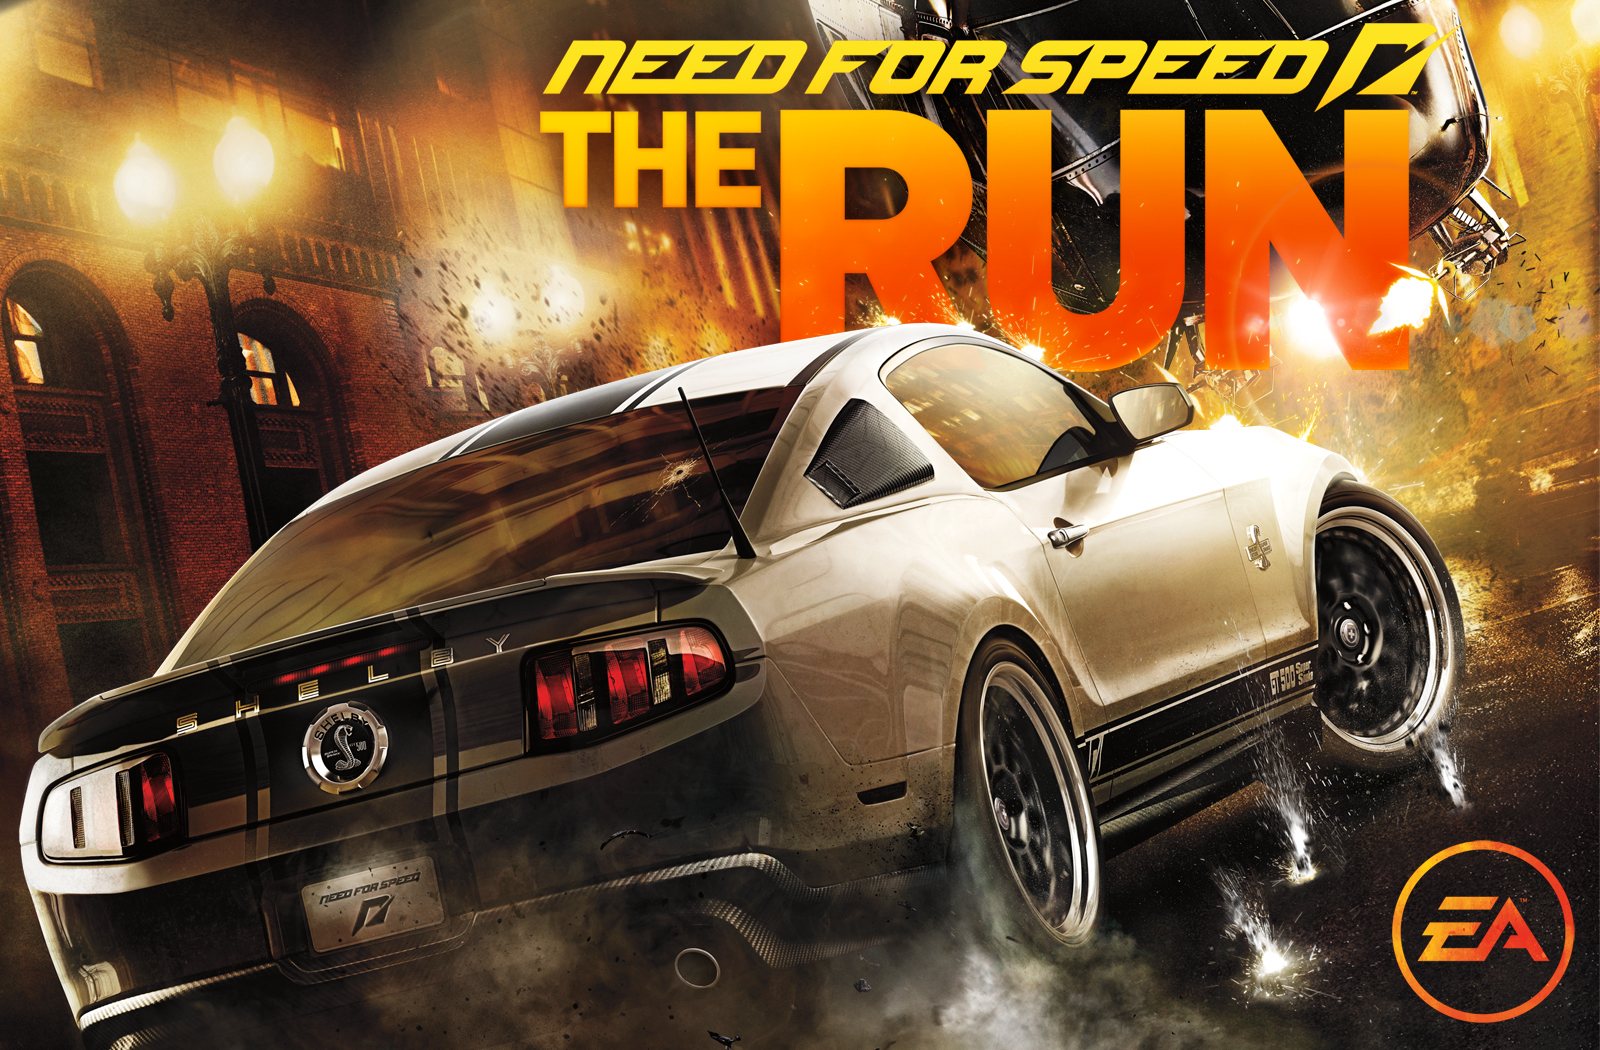 http://3.bp.blogspot.com/-7QeTHwD1YUw/UEJmSI-qzLI/AAAAAAAAGWI/Hs4P-om3Fvw/s1600/Need-for-Speed-The-Run-wallpaper.jpg